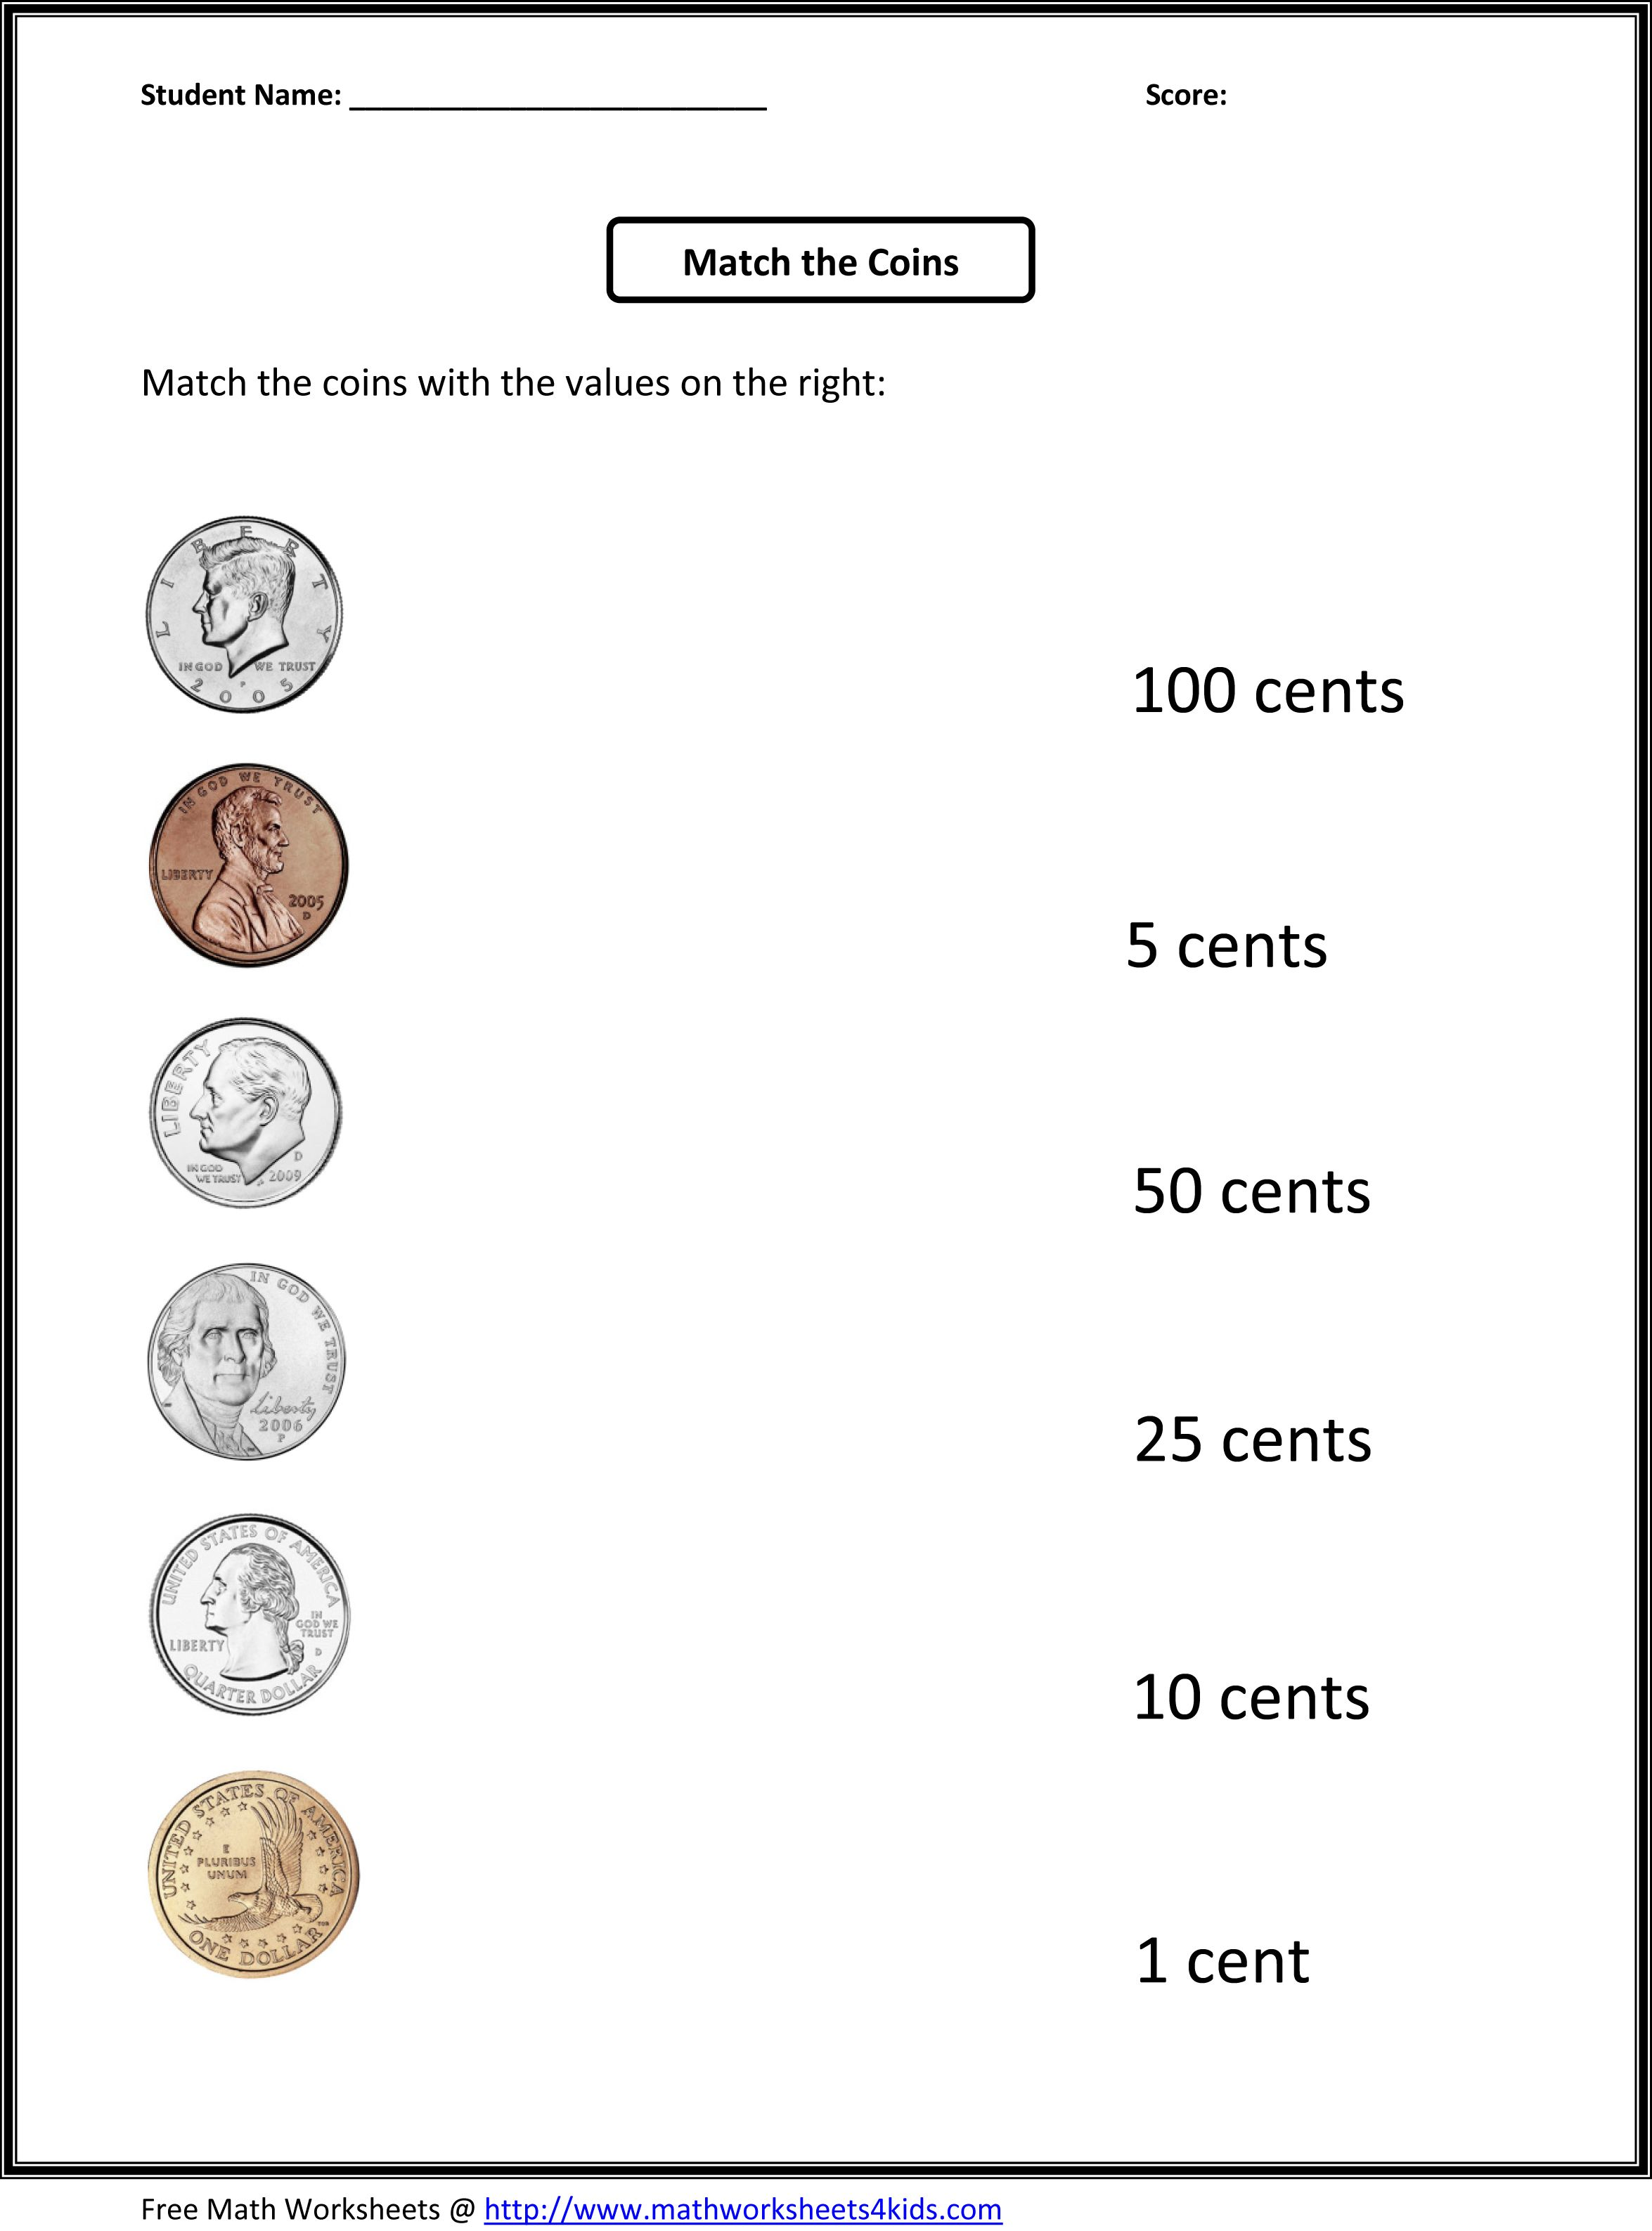 worksheet Liberty Kids Worksheets free 1st grade worksheets match the coins and its values first math worksheets